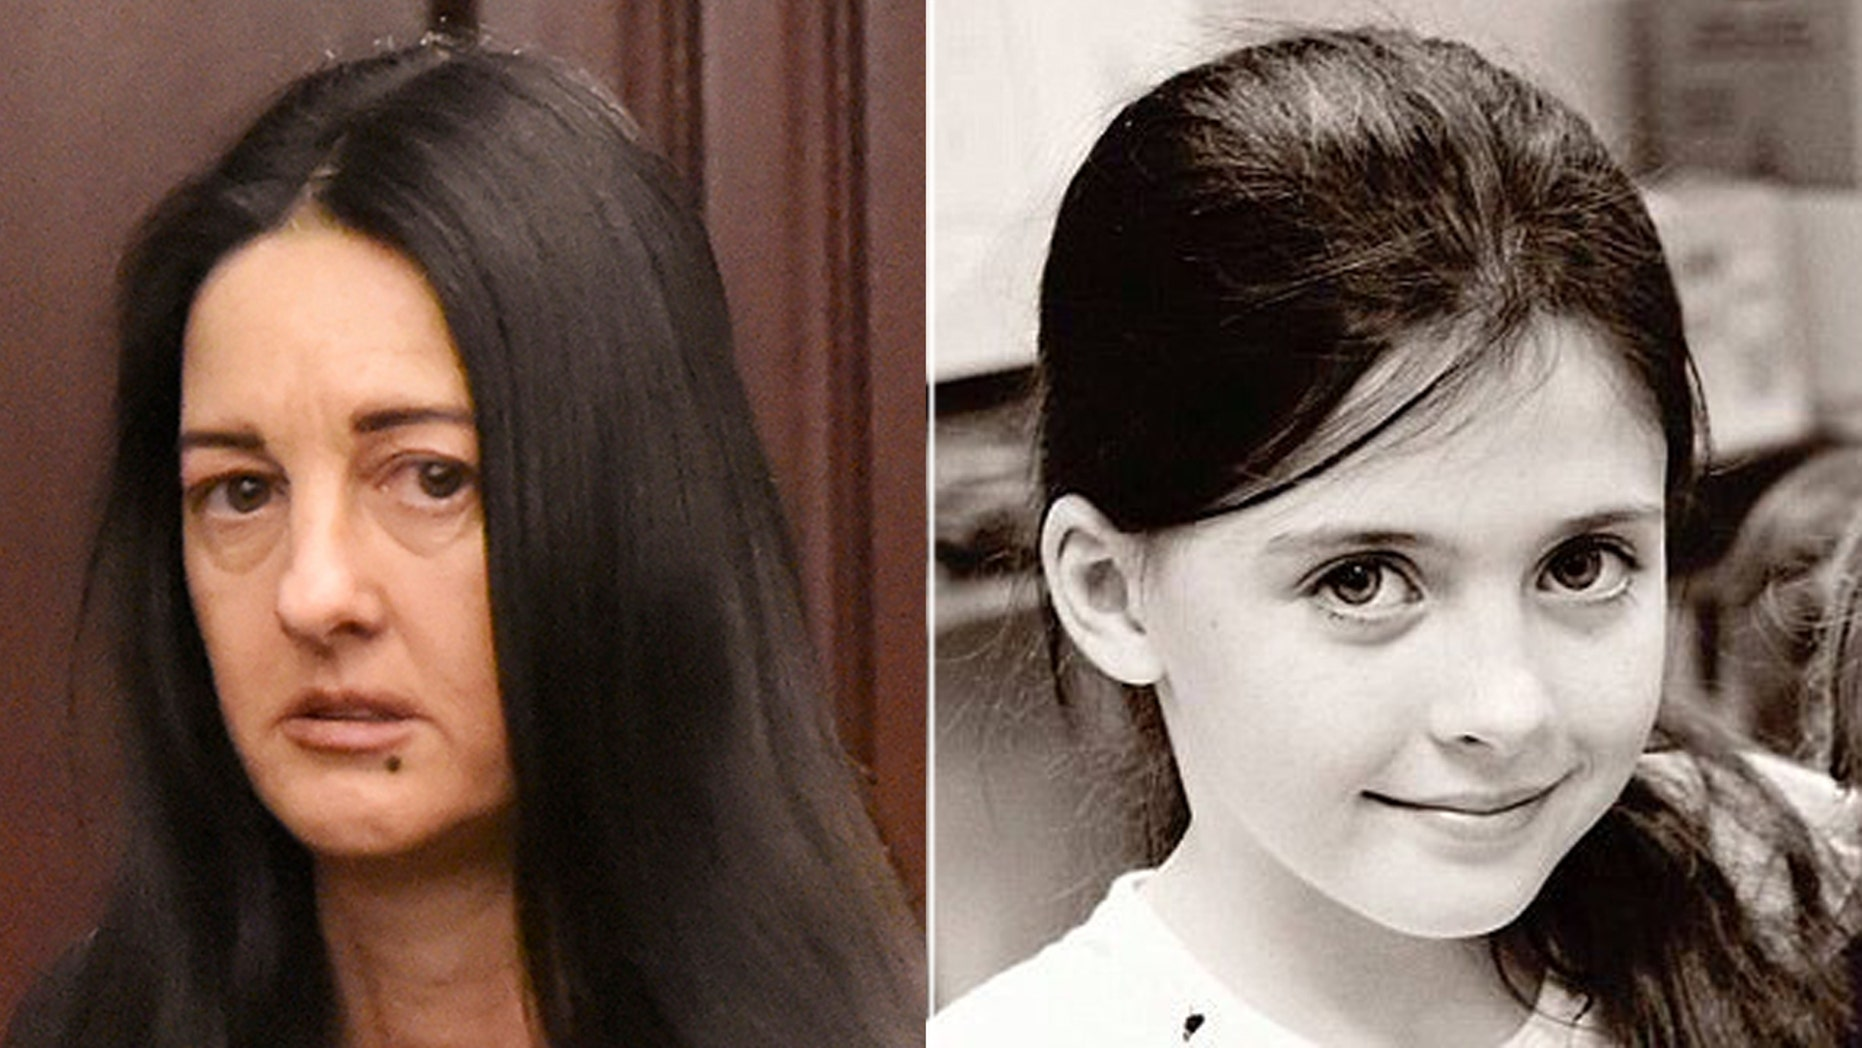 Rayne Perrywinkle (left) testified about the day her daughter, Cherish  Perrywinkle, disappeared